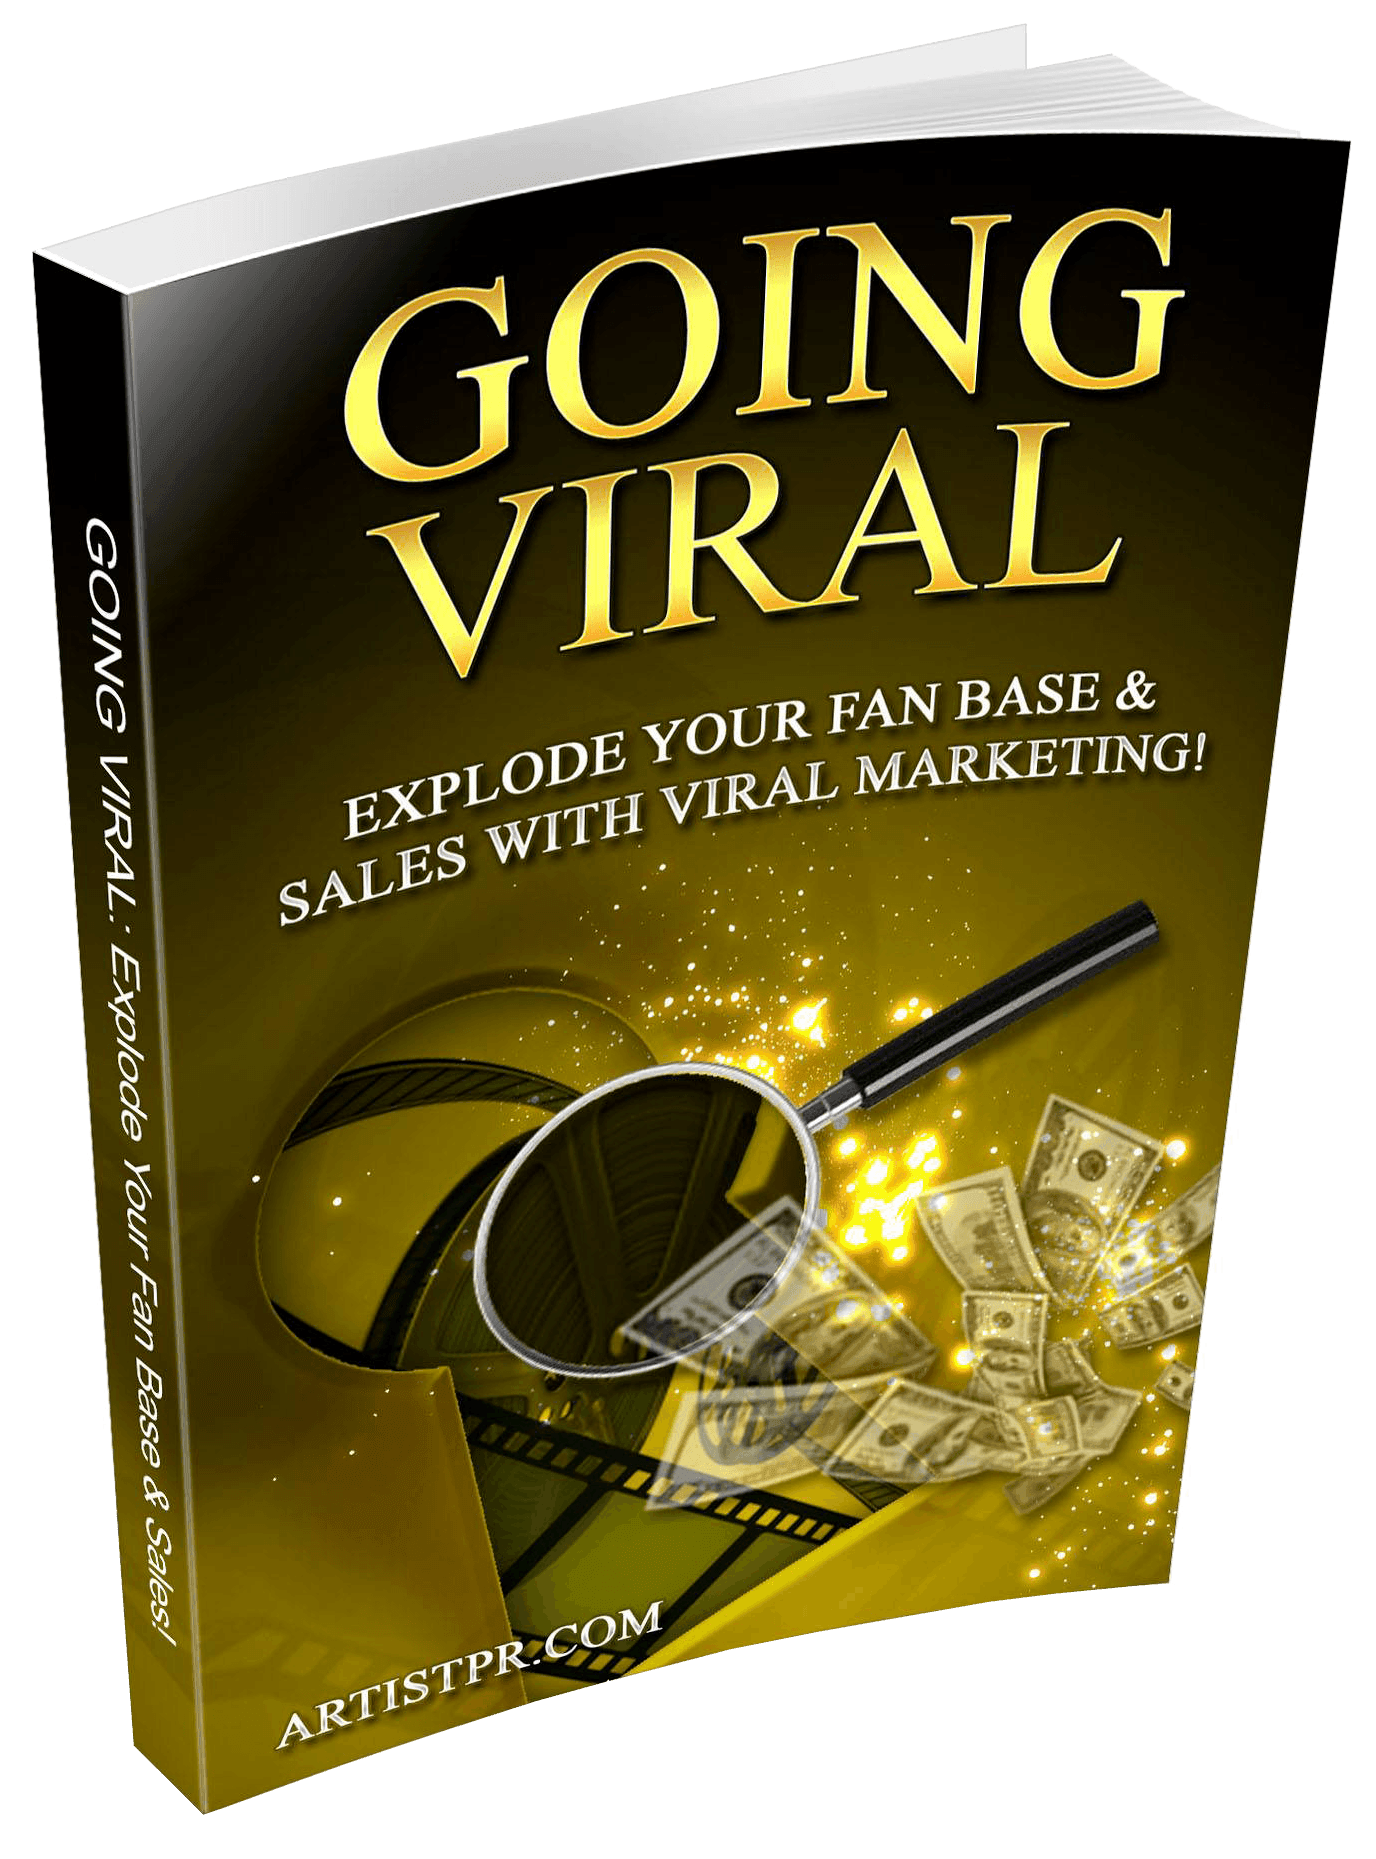 Going Viral: Explode Your Fan Base & Sales With Viral Marketing